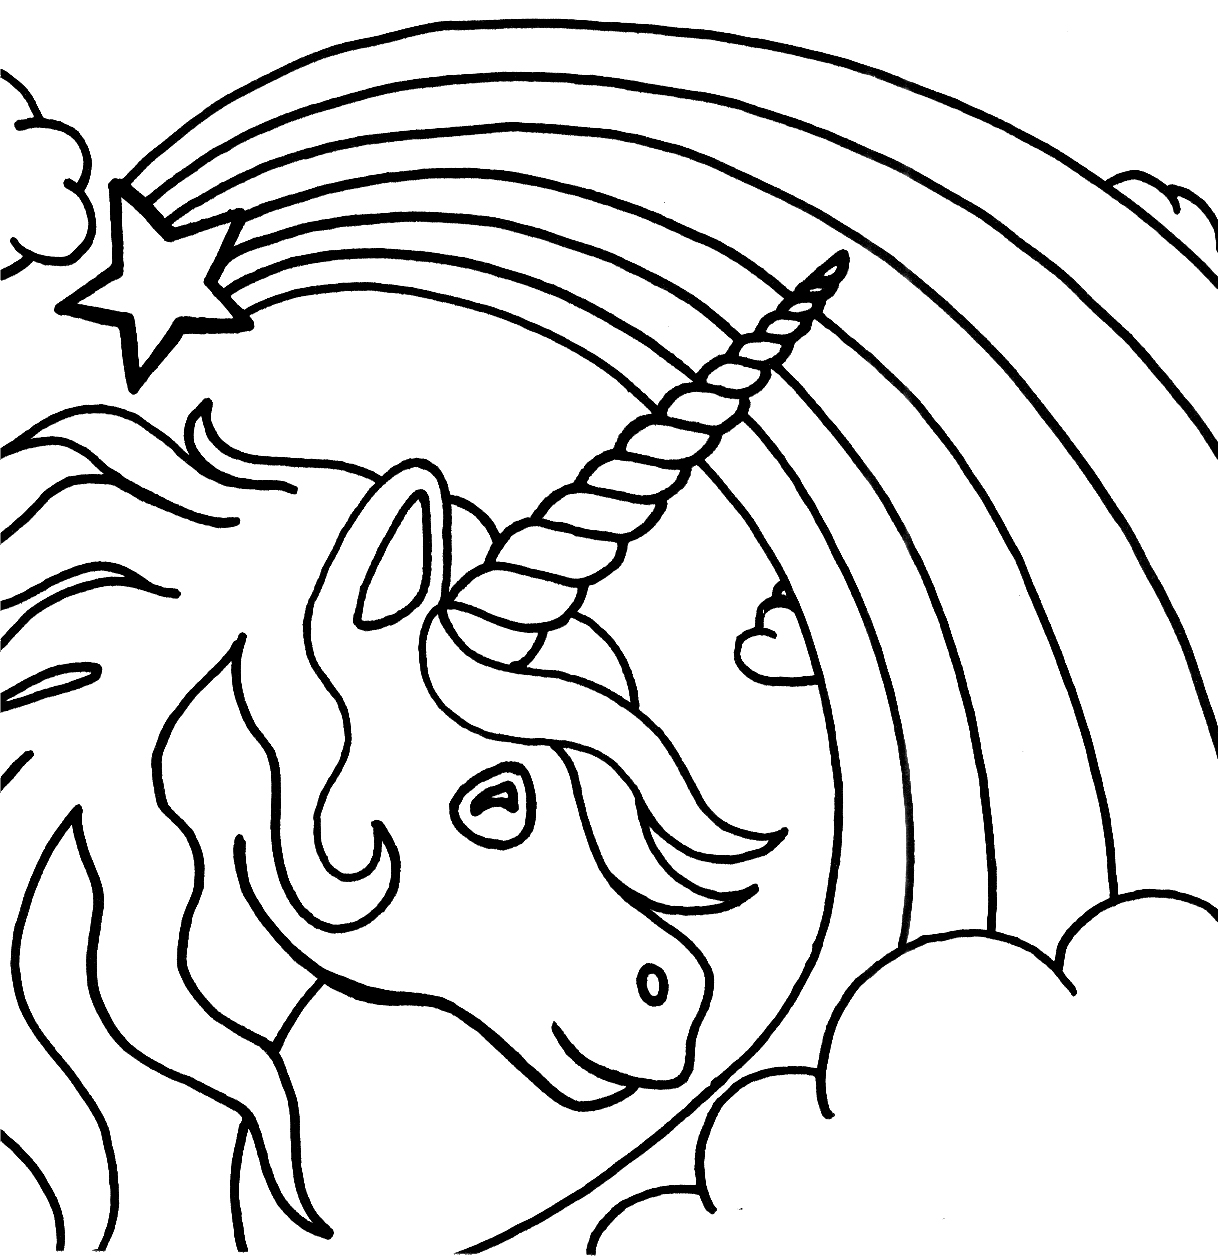 Simplicity image with regard to printable coloring pages unicorn